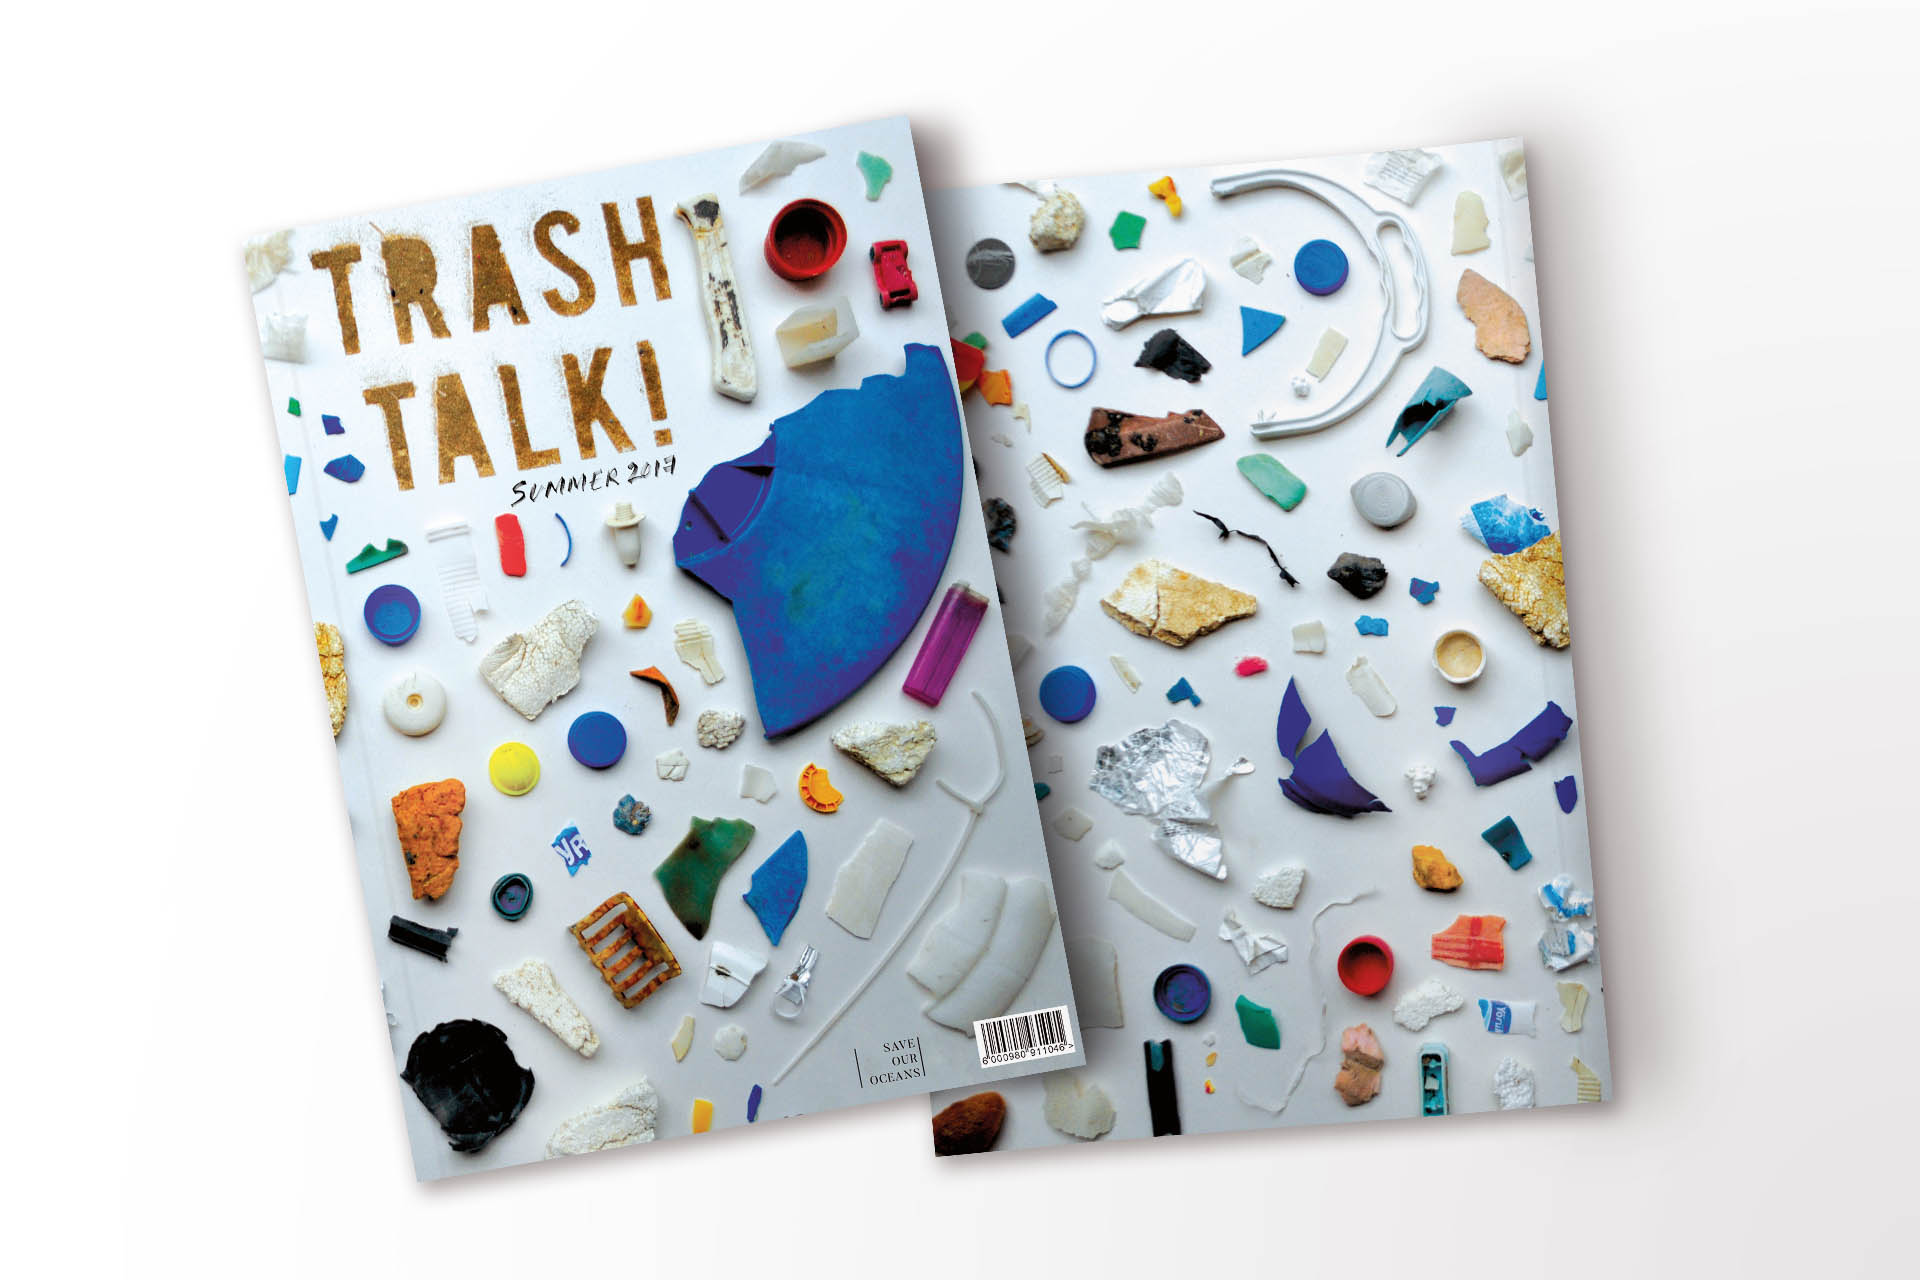 Trash Talk magazine cover design for Save Our Oceans